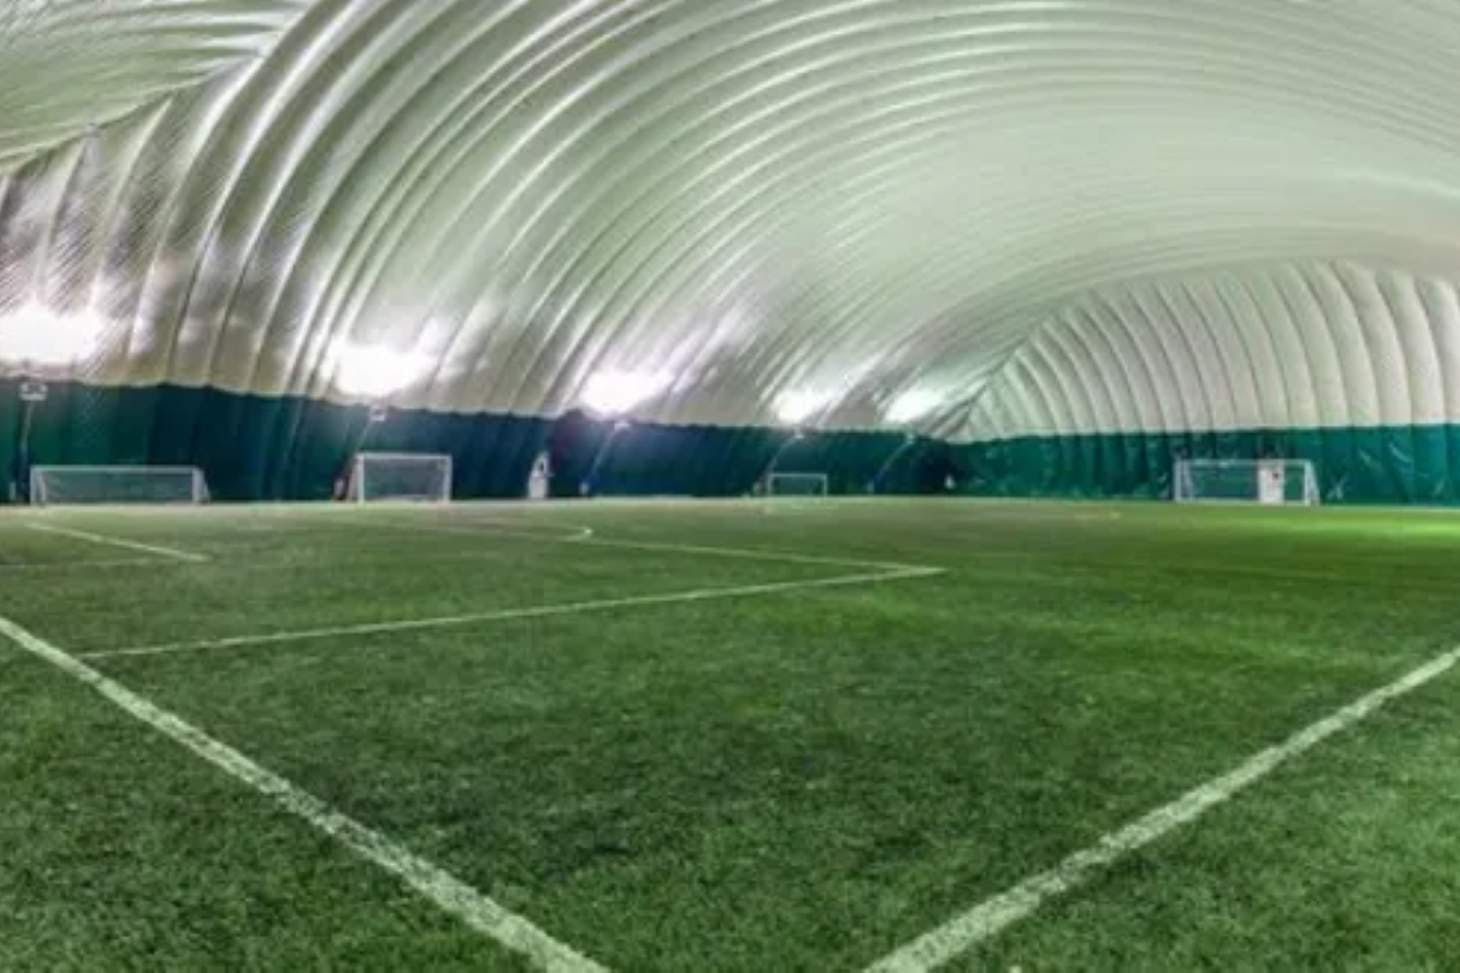 Crystal Palace National Sports Centre 7 a side | 3G Astroturf football pitch